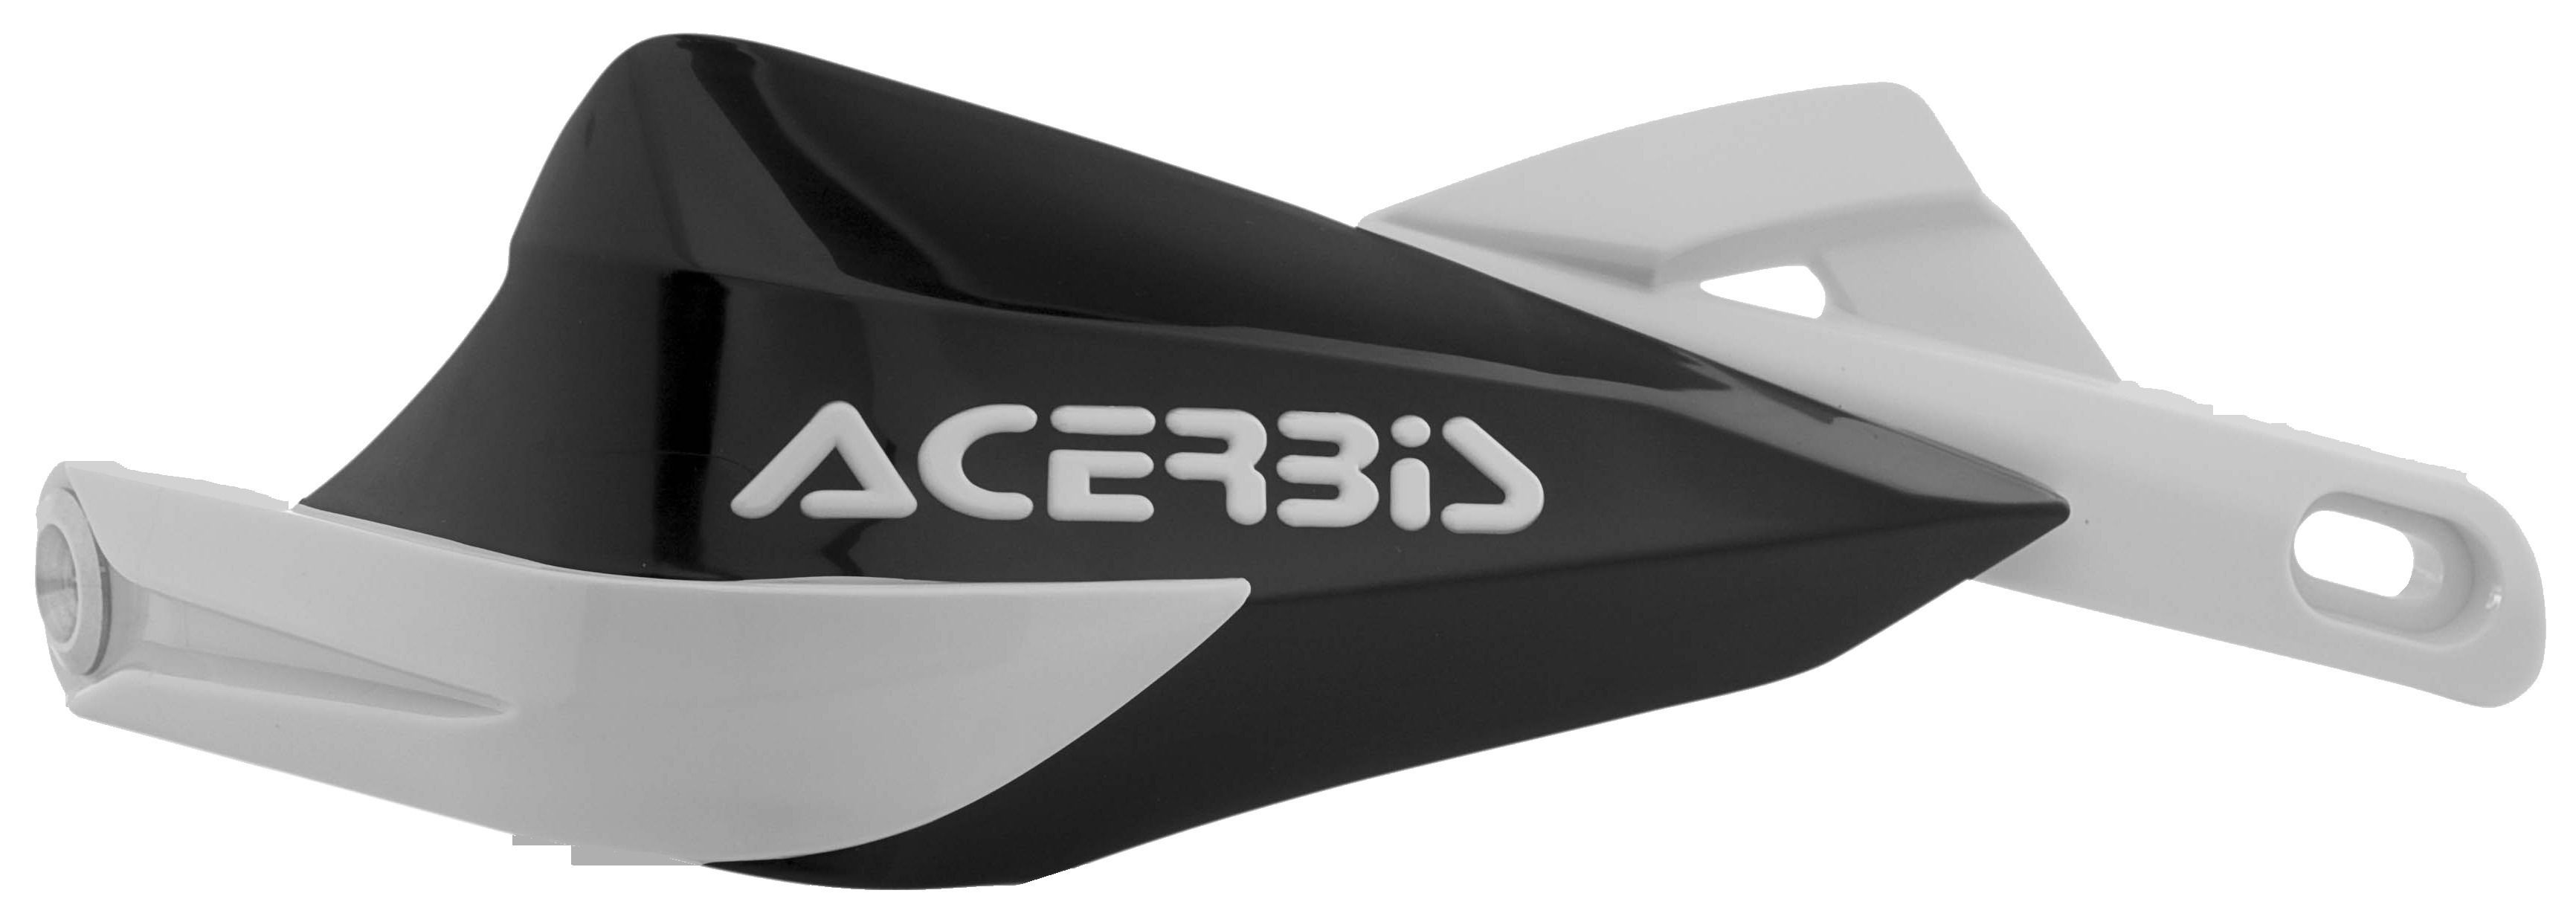 Acerbis Rally 3 Handguards Cycle Gear